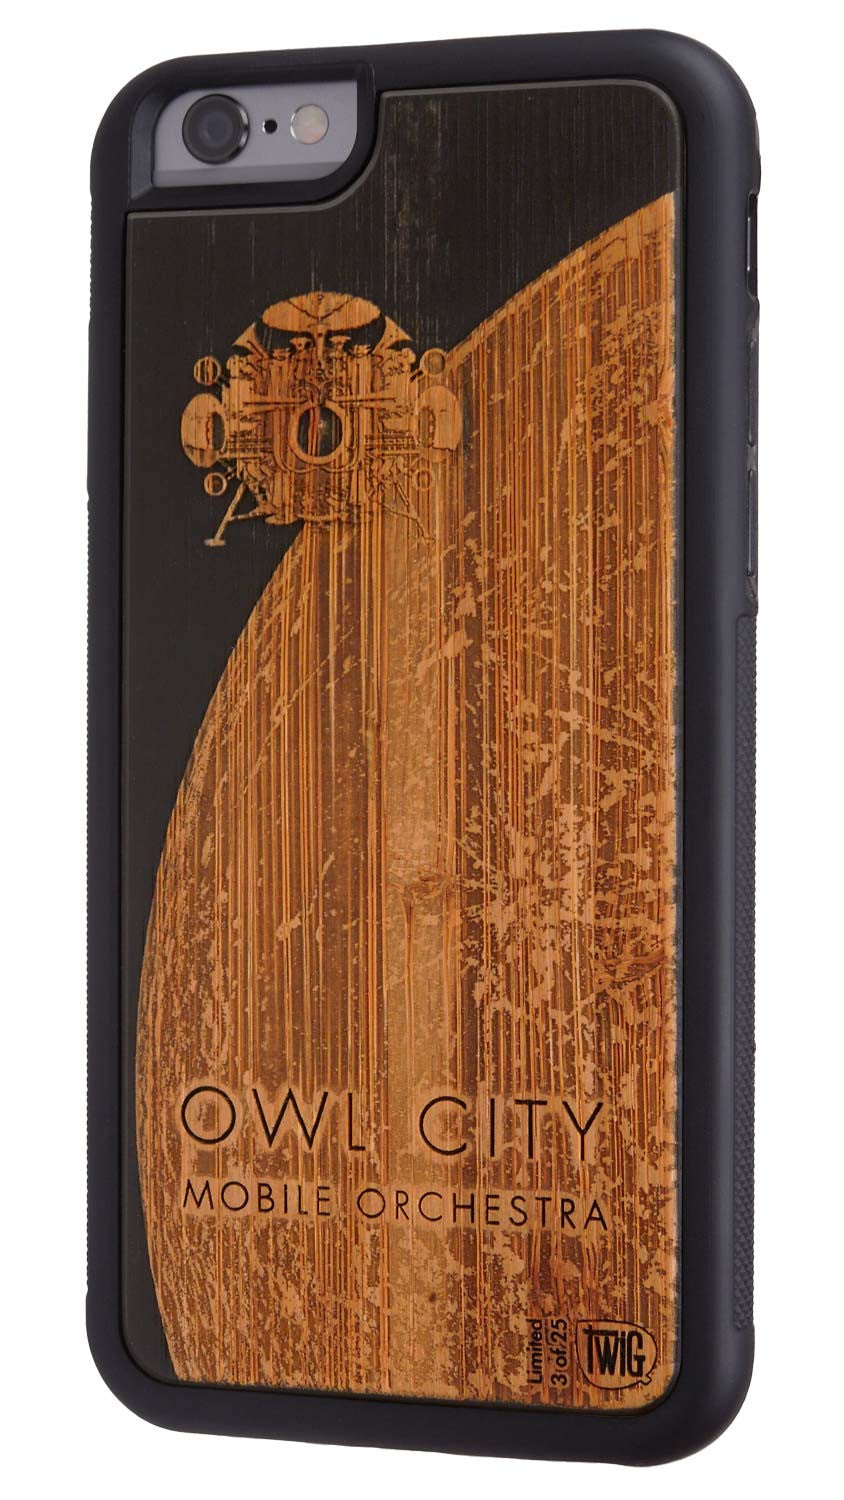 Owl City Mobile Orchestra iPhone Case #1- Limited Edition of 25, Case for iPhone 6/6s & Plus - Twig Case Co.